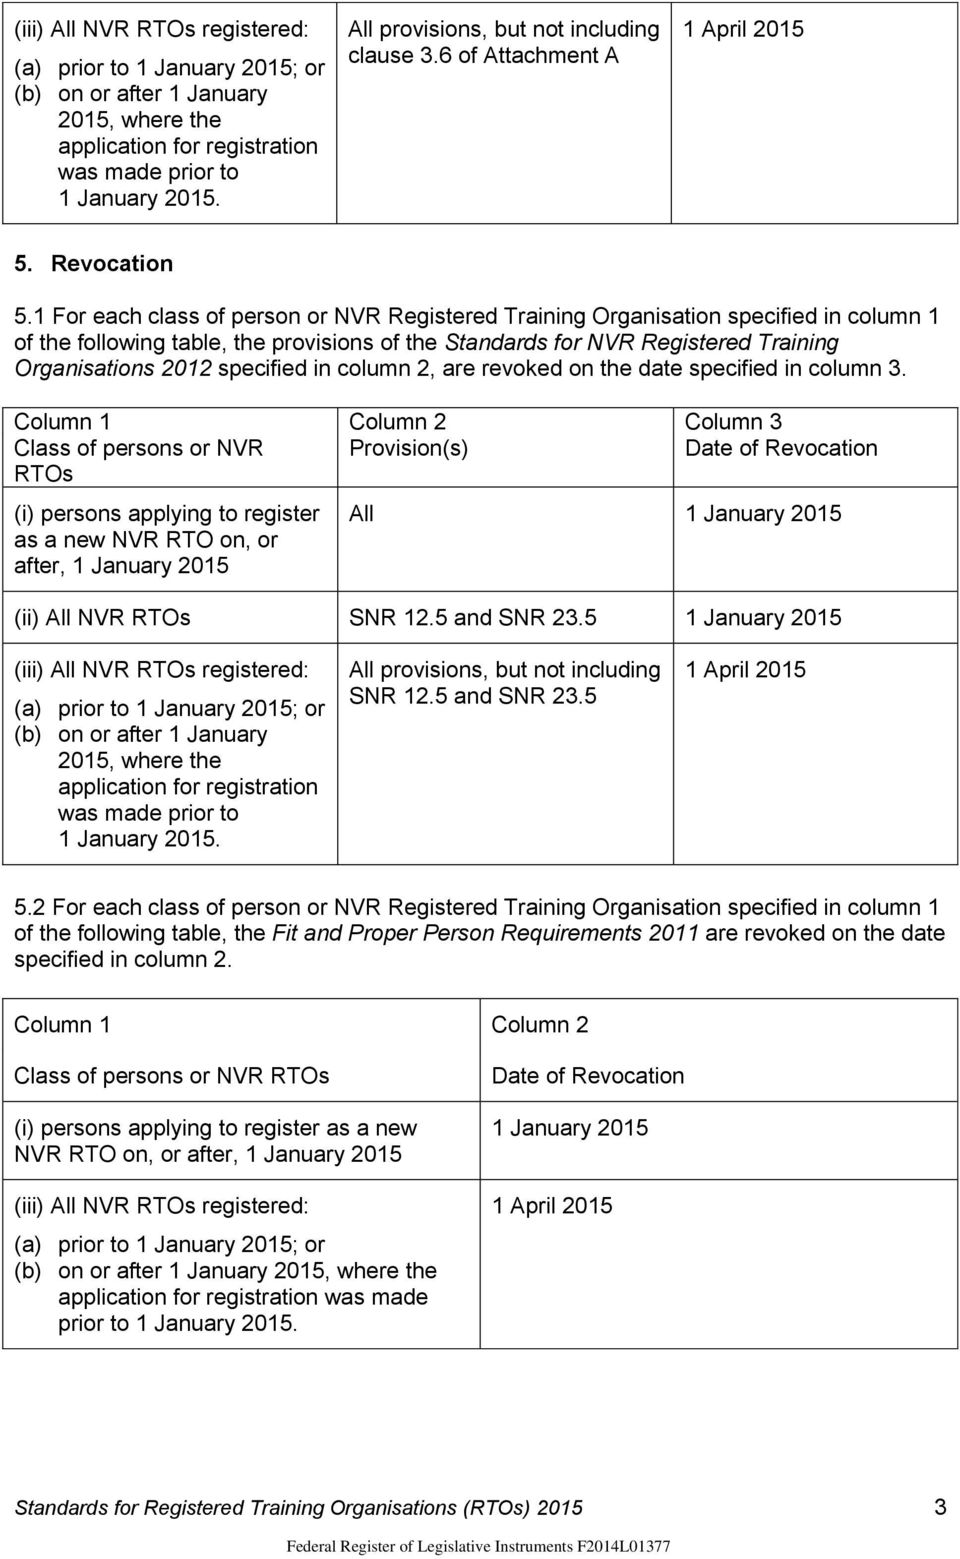 1 For each class of person or NVR Registered Training Organisation specified in column 1 of the following table, the provisions of the Standards for NVR Registered Training Organisations 2012